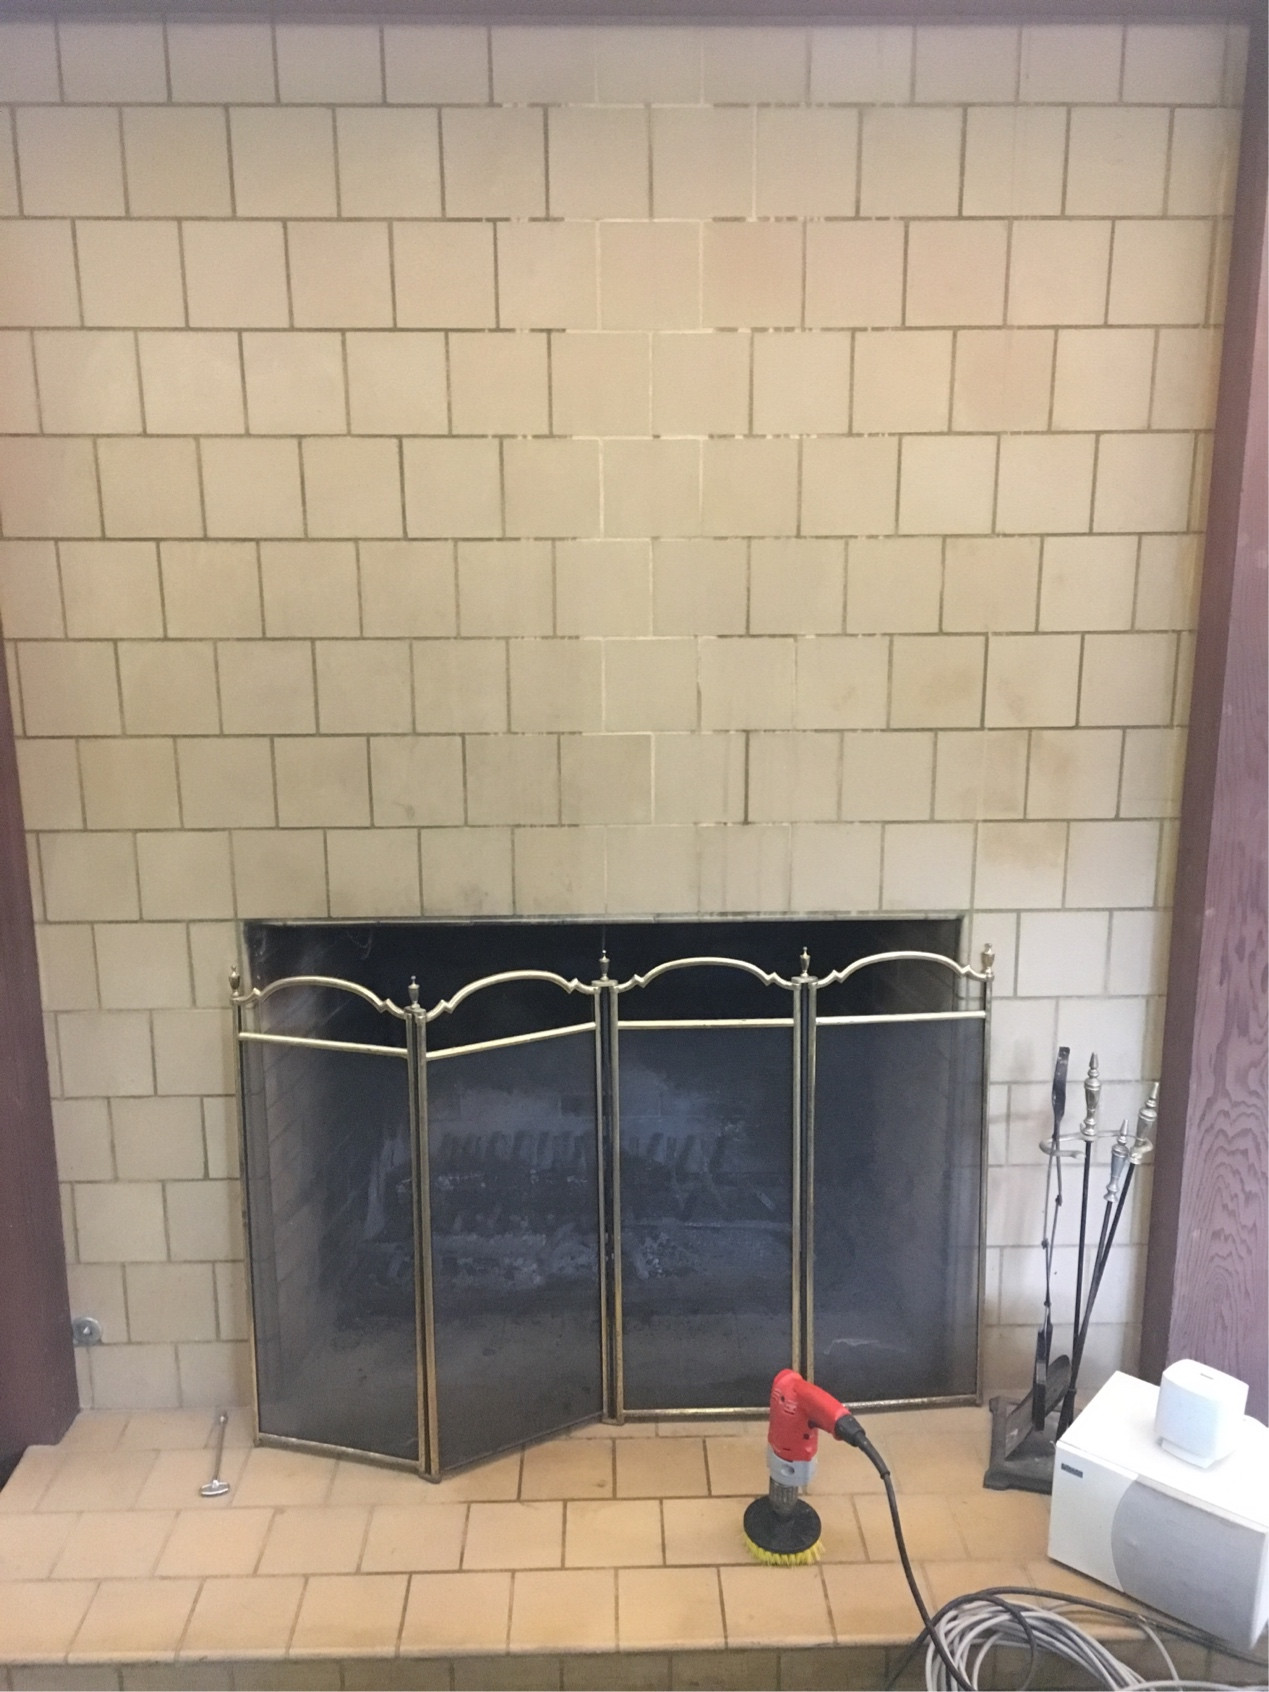 Cleaning A Fireplace Cleaning How To Clean Fireplace Grout Home Improvement Stack